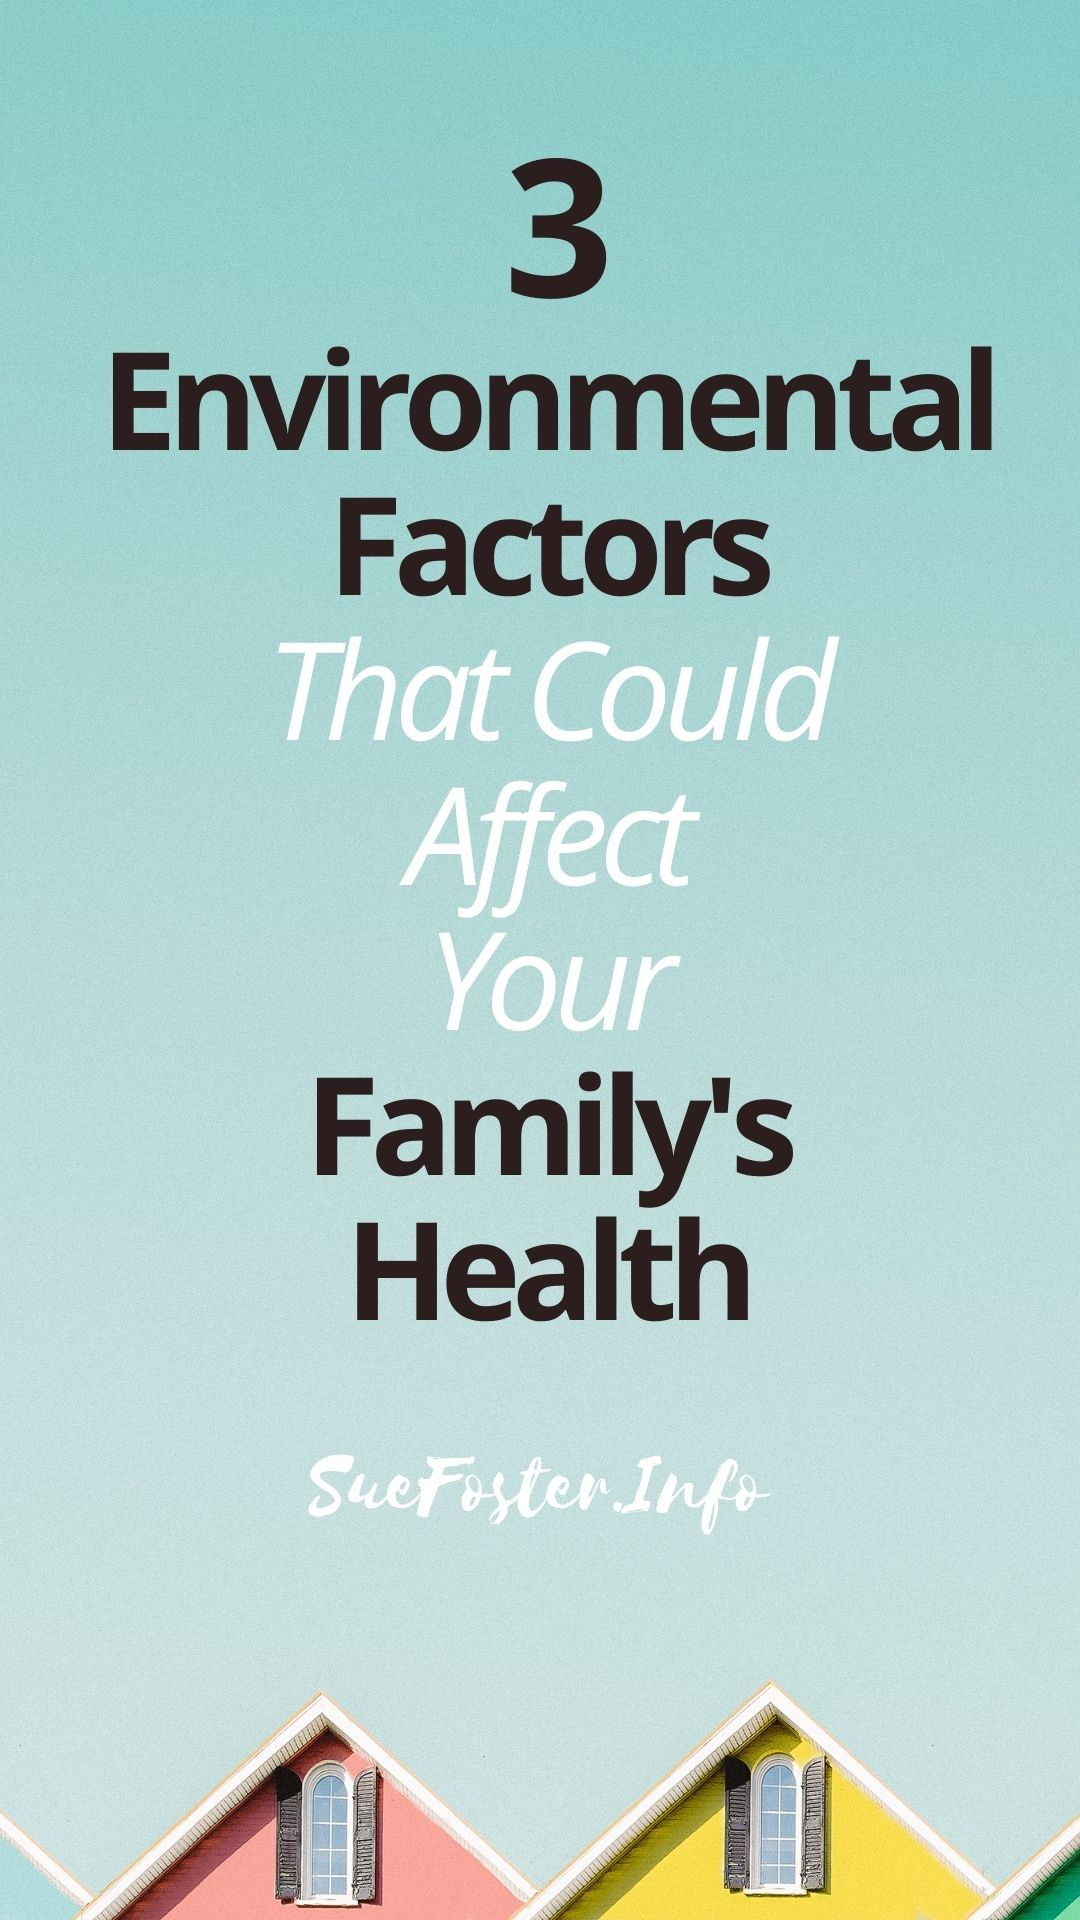 As a parent, your primary concern should be keeping your children safe. Learn environmental factors around your home that can affect your family's well-being.